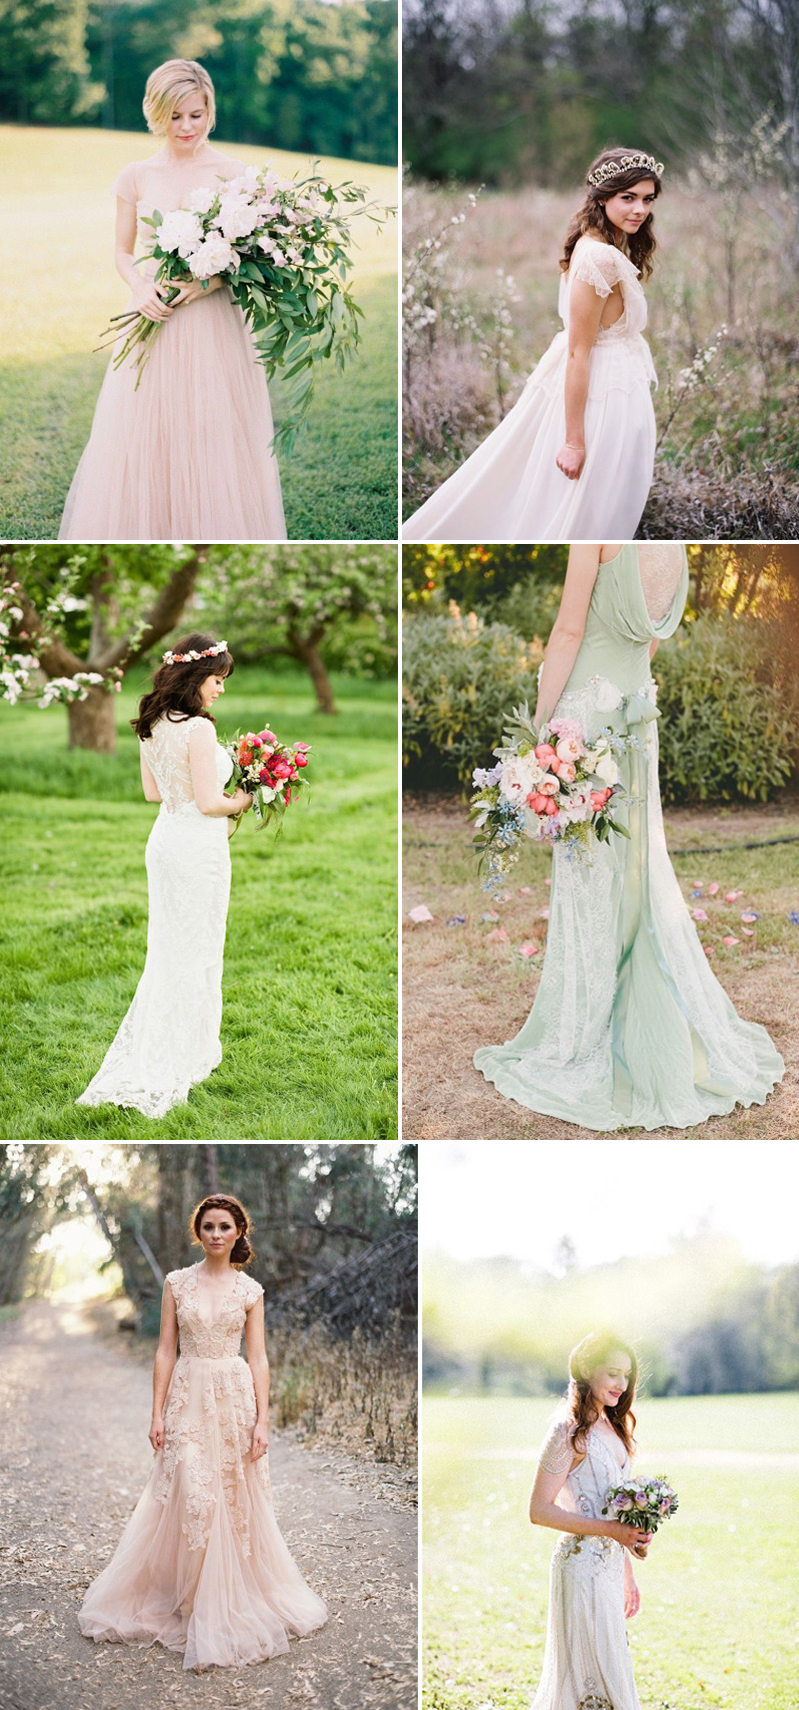 Coco Wedding Venues - Rustic Romance Wedding Style - Bridal Fashion.